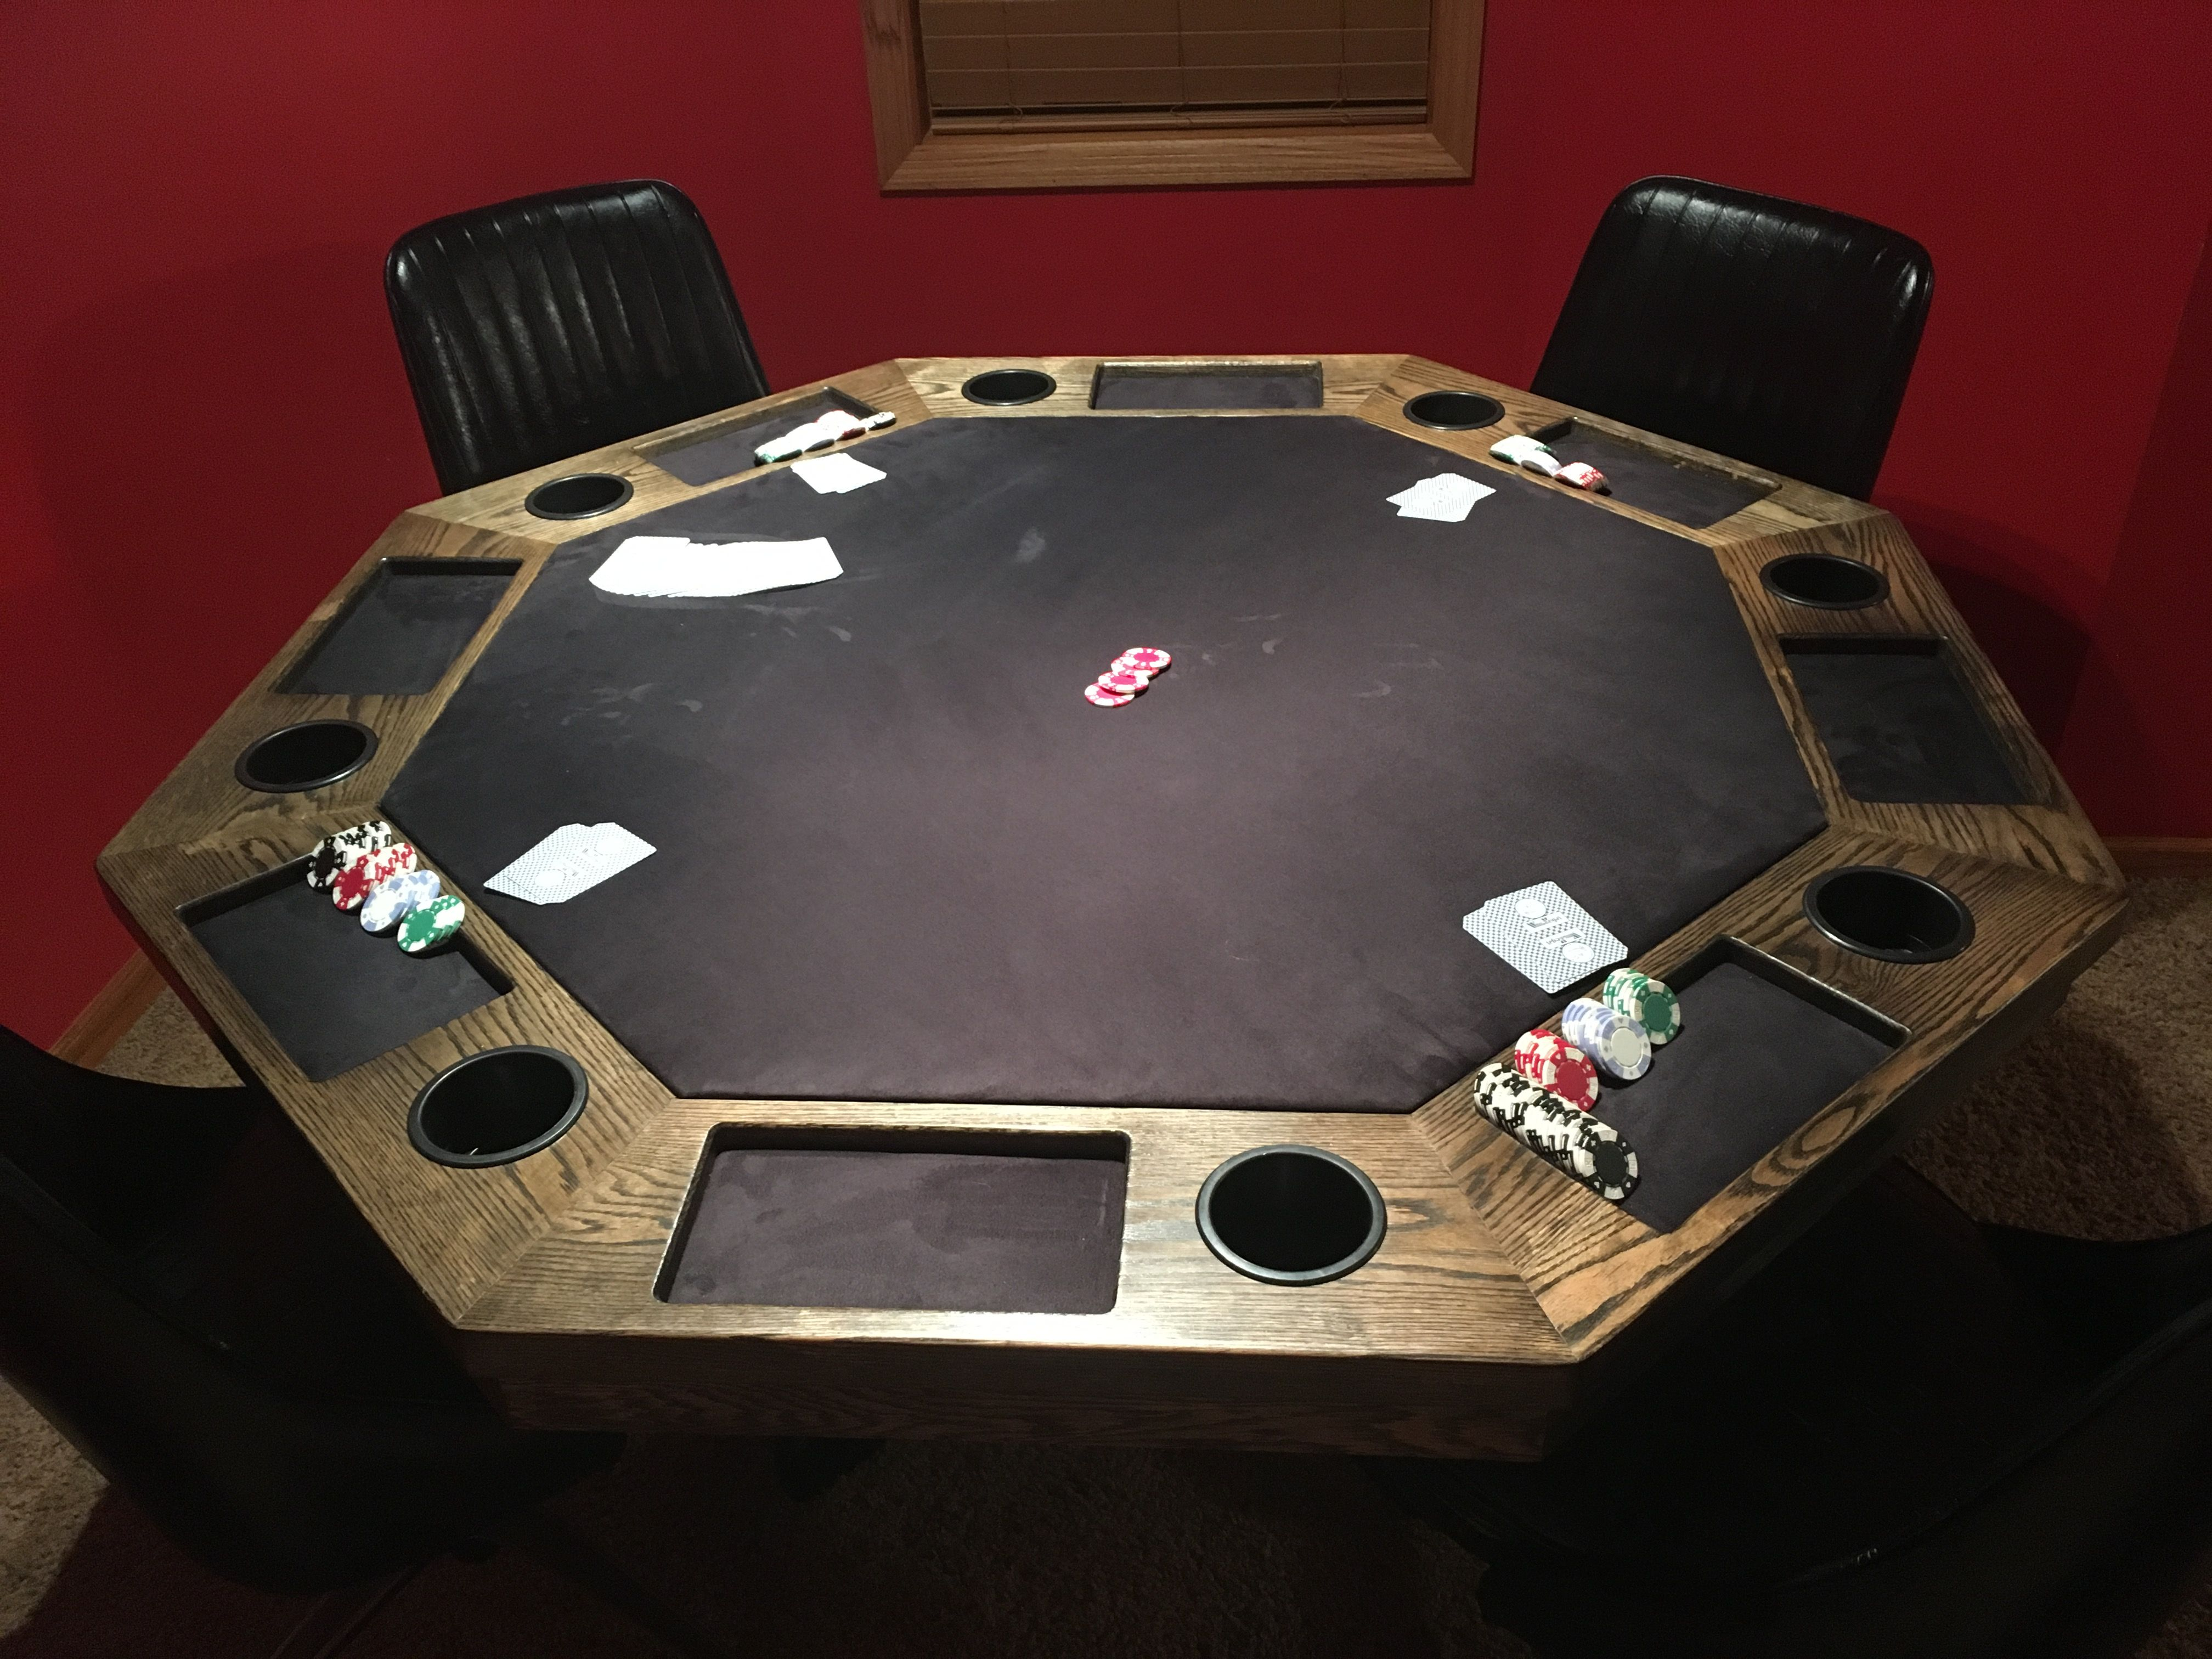 My Poker Table Oak Table That Sits 8 Comfortably Stained An Ebony Stain With Black Felt I Like The Looks Oak Table Poker Table Ebony